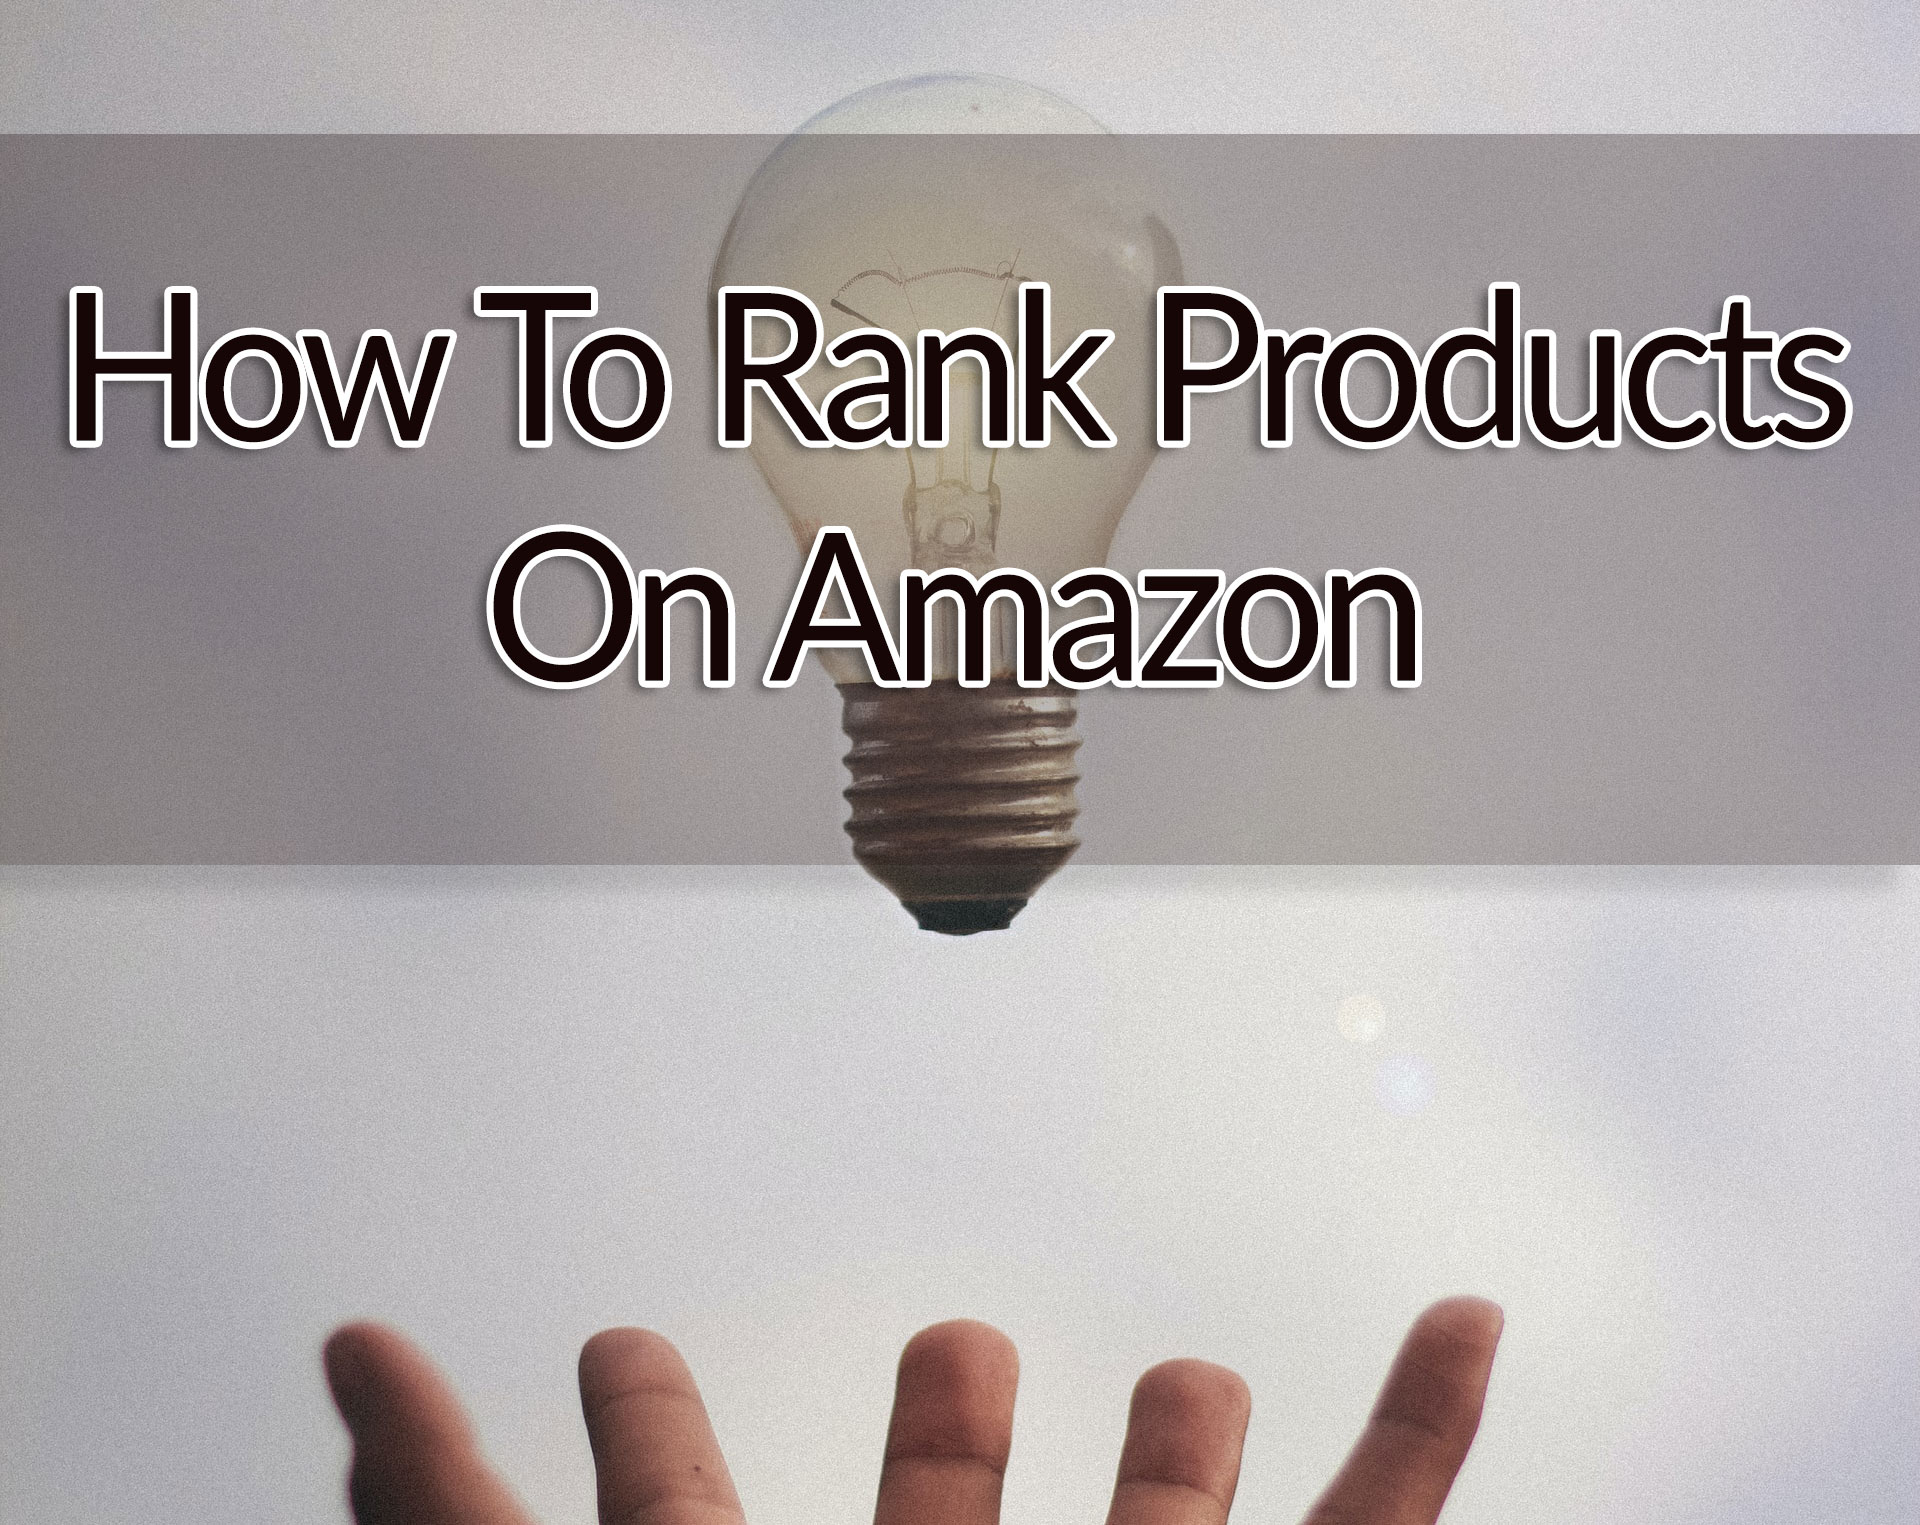 How To Rank Products In Amazon - KeyworX Guide